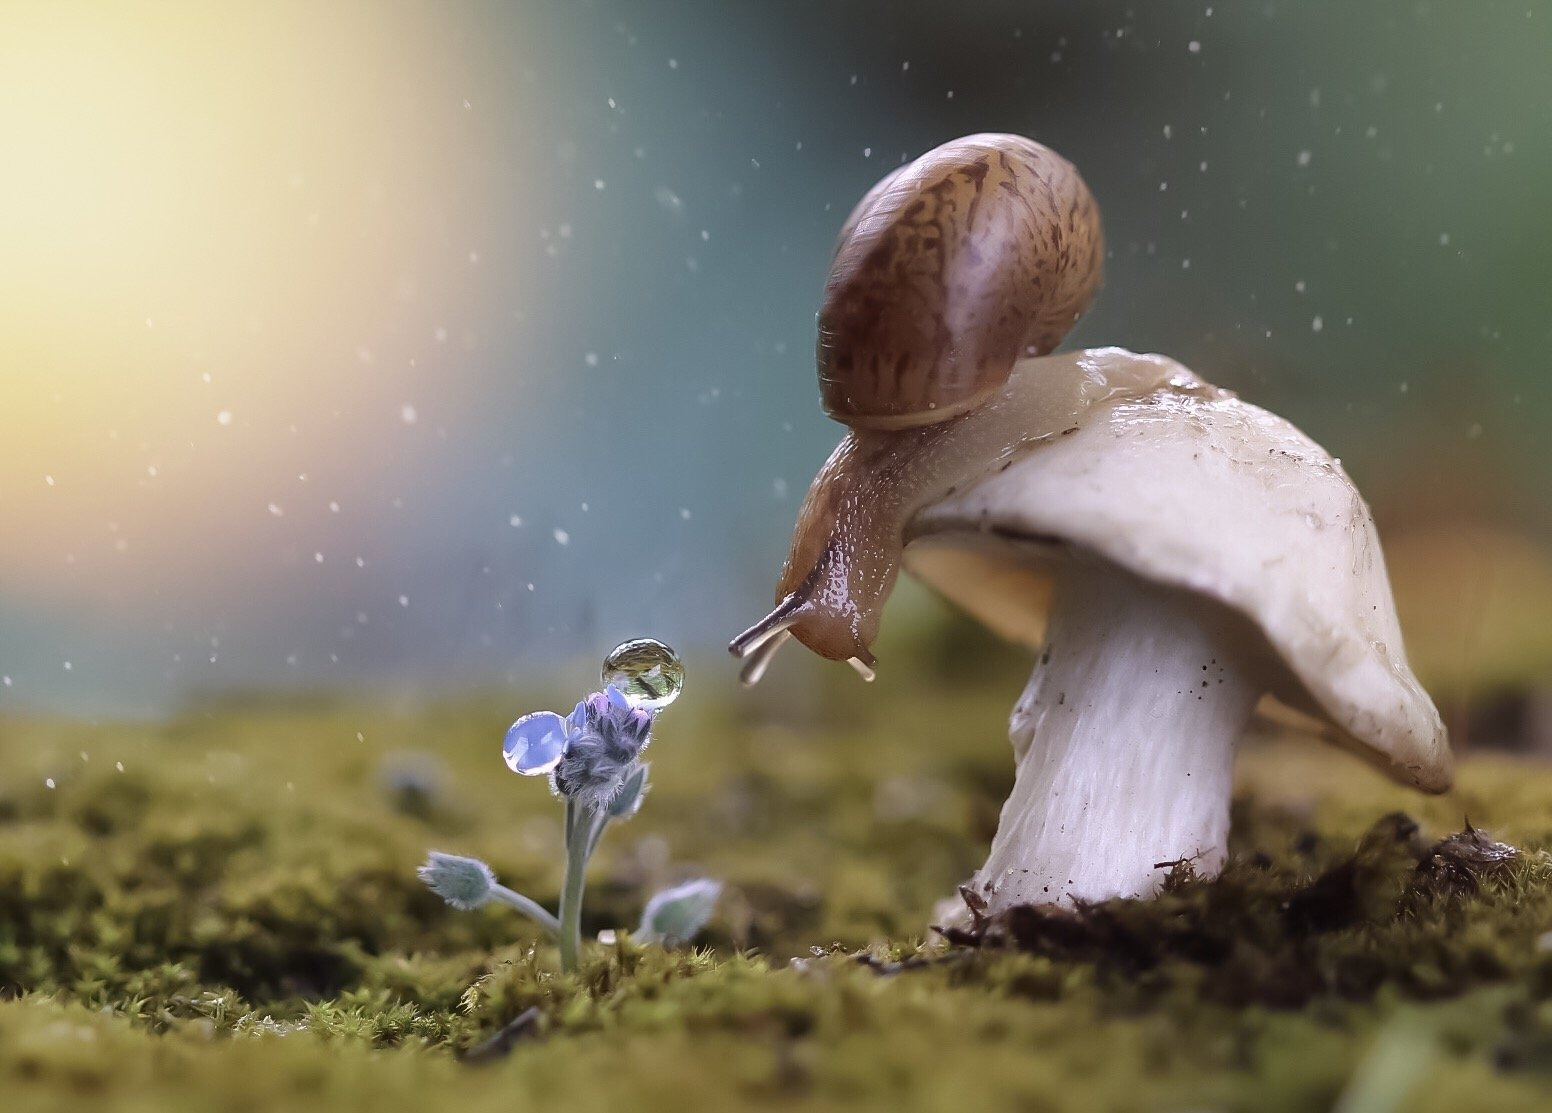 макро, macro, snail, mushroom, гриб, nature, wildlife, evening, Людмила Гудина